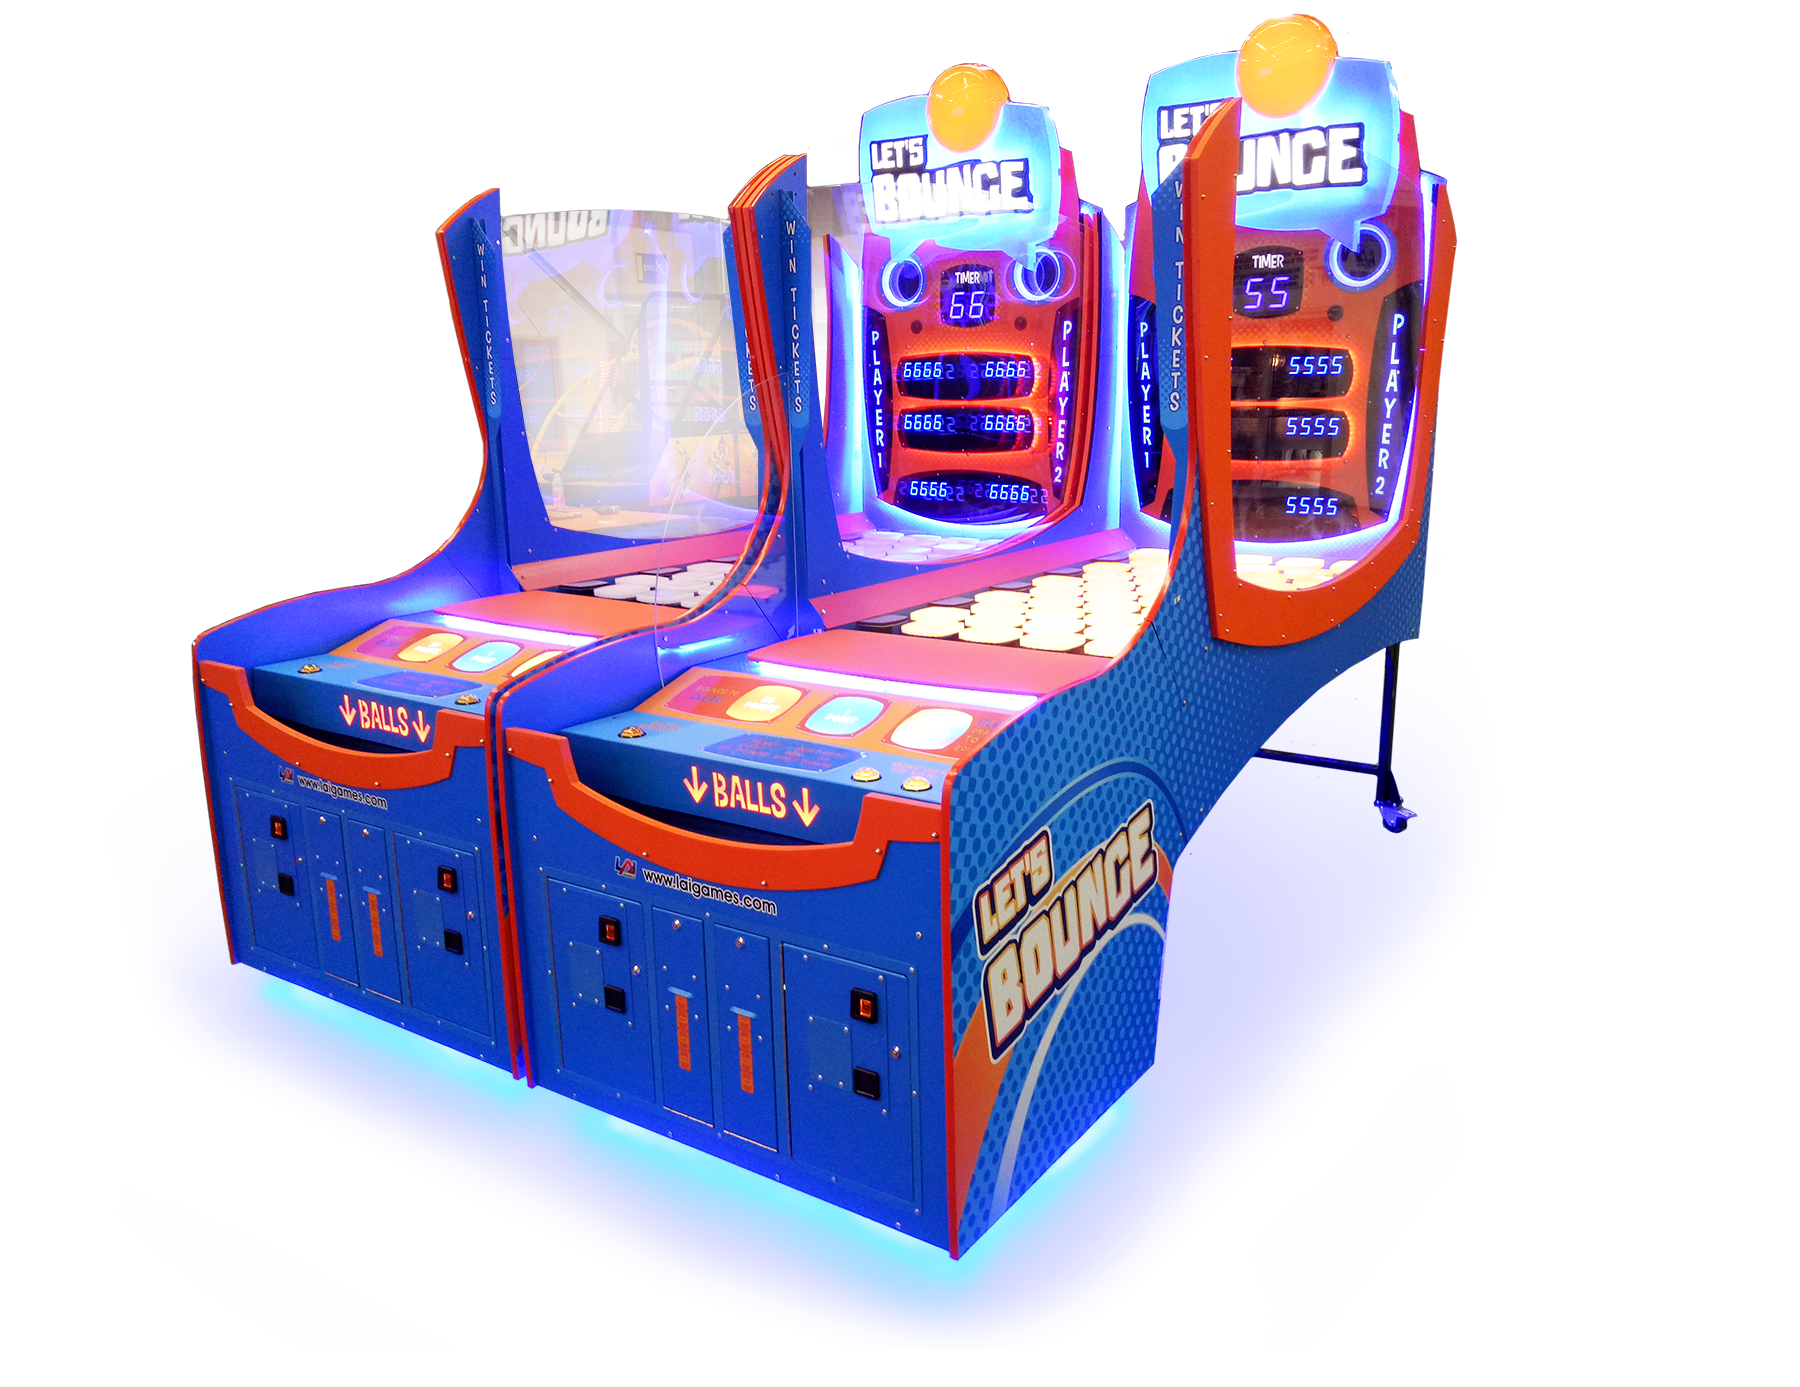 LAI Games to Showcase IAAPA Crowd Pleasers HYPERshoot and Let's Bounce at Betson Texas Open House